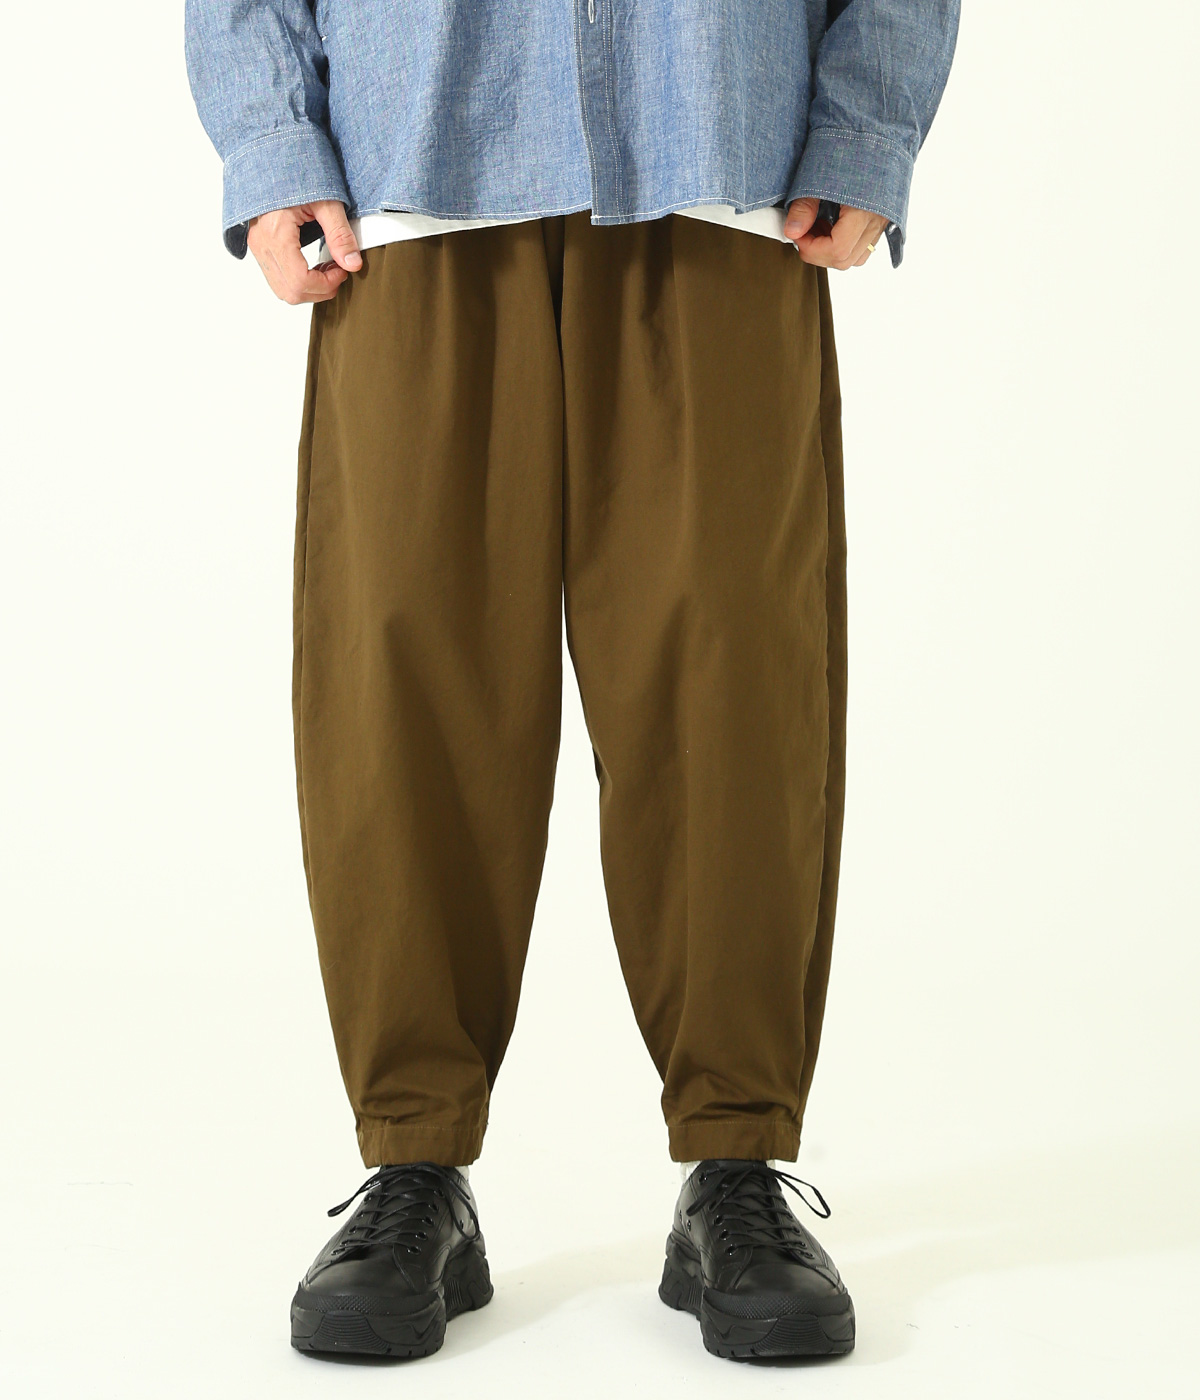 COTTON WEATHER PIEROT PANTS